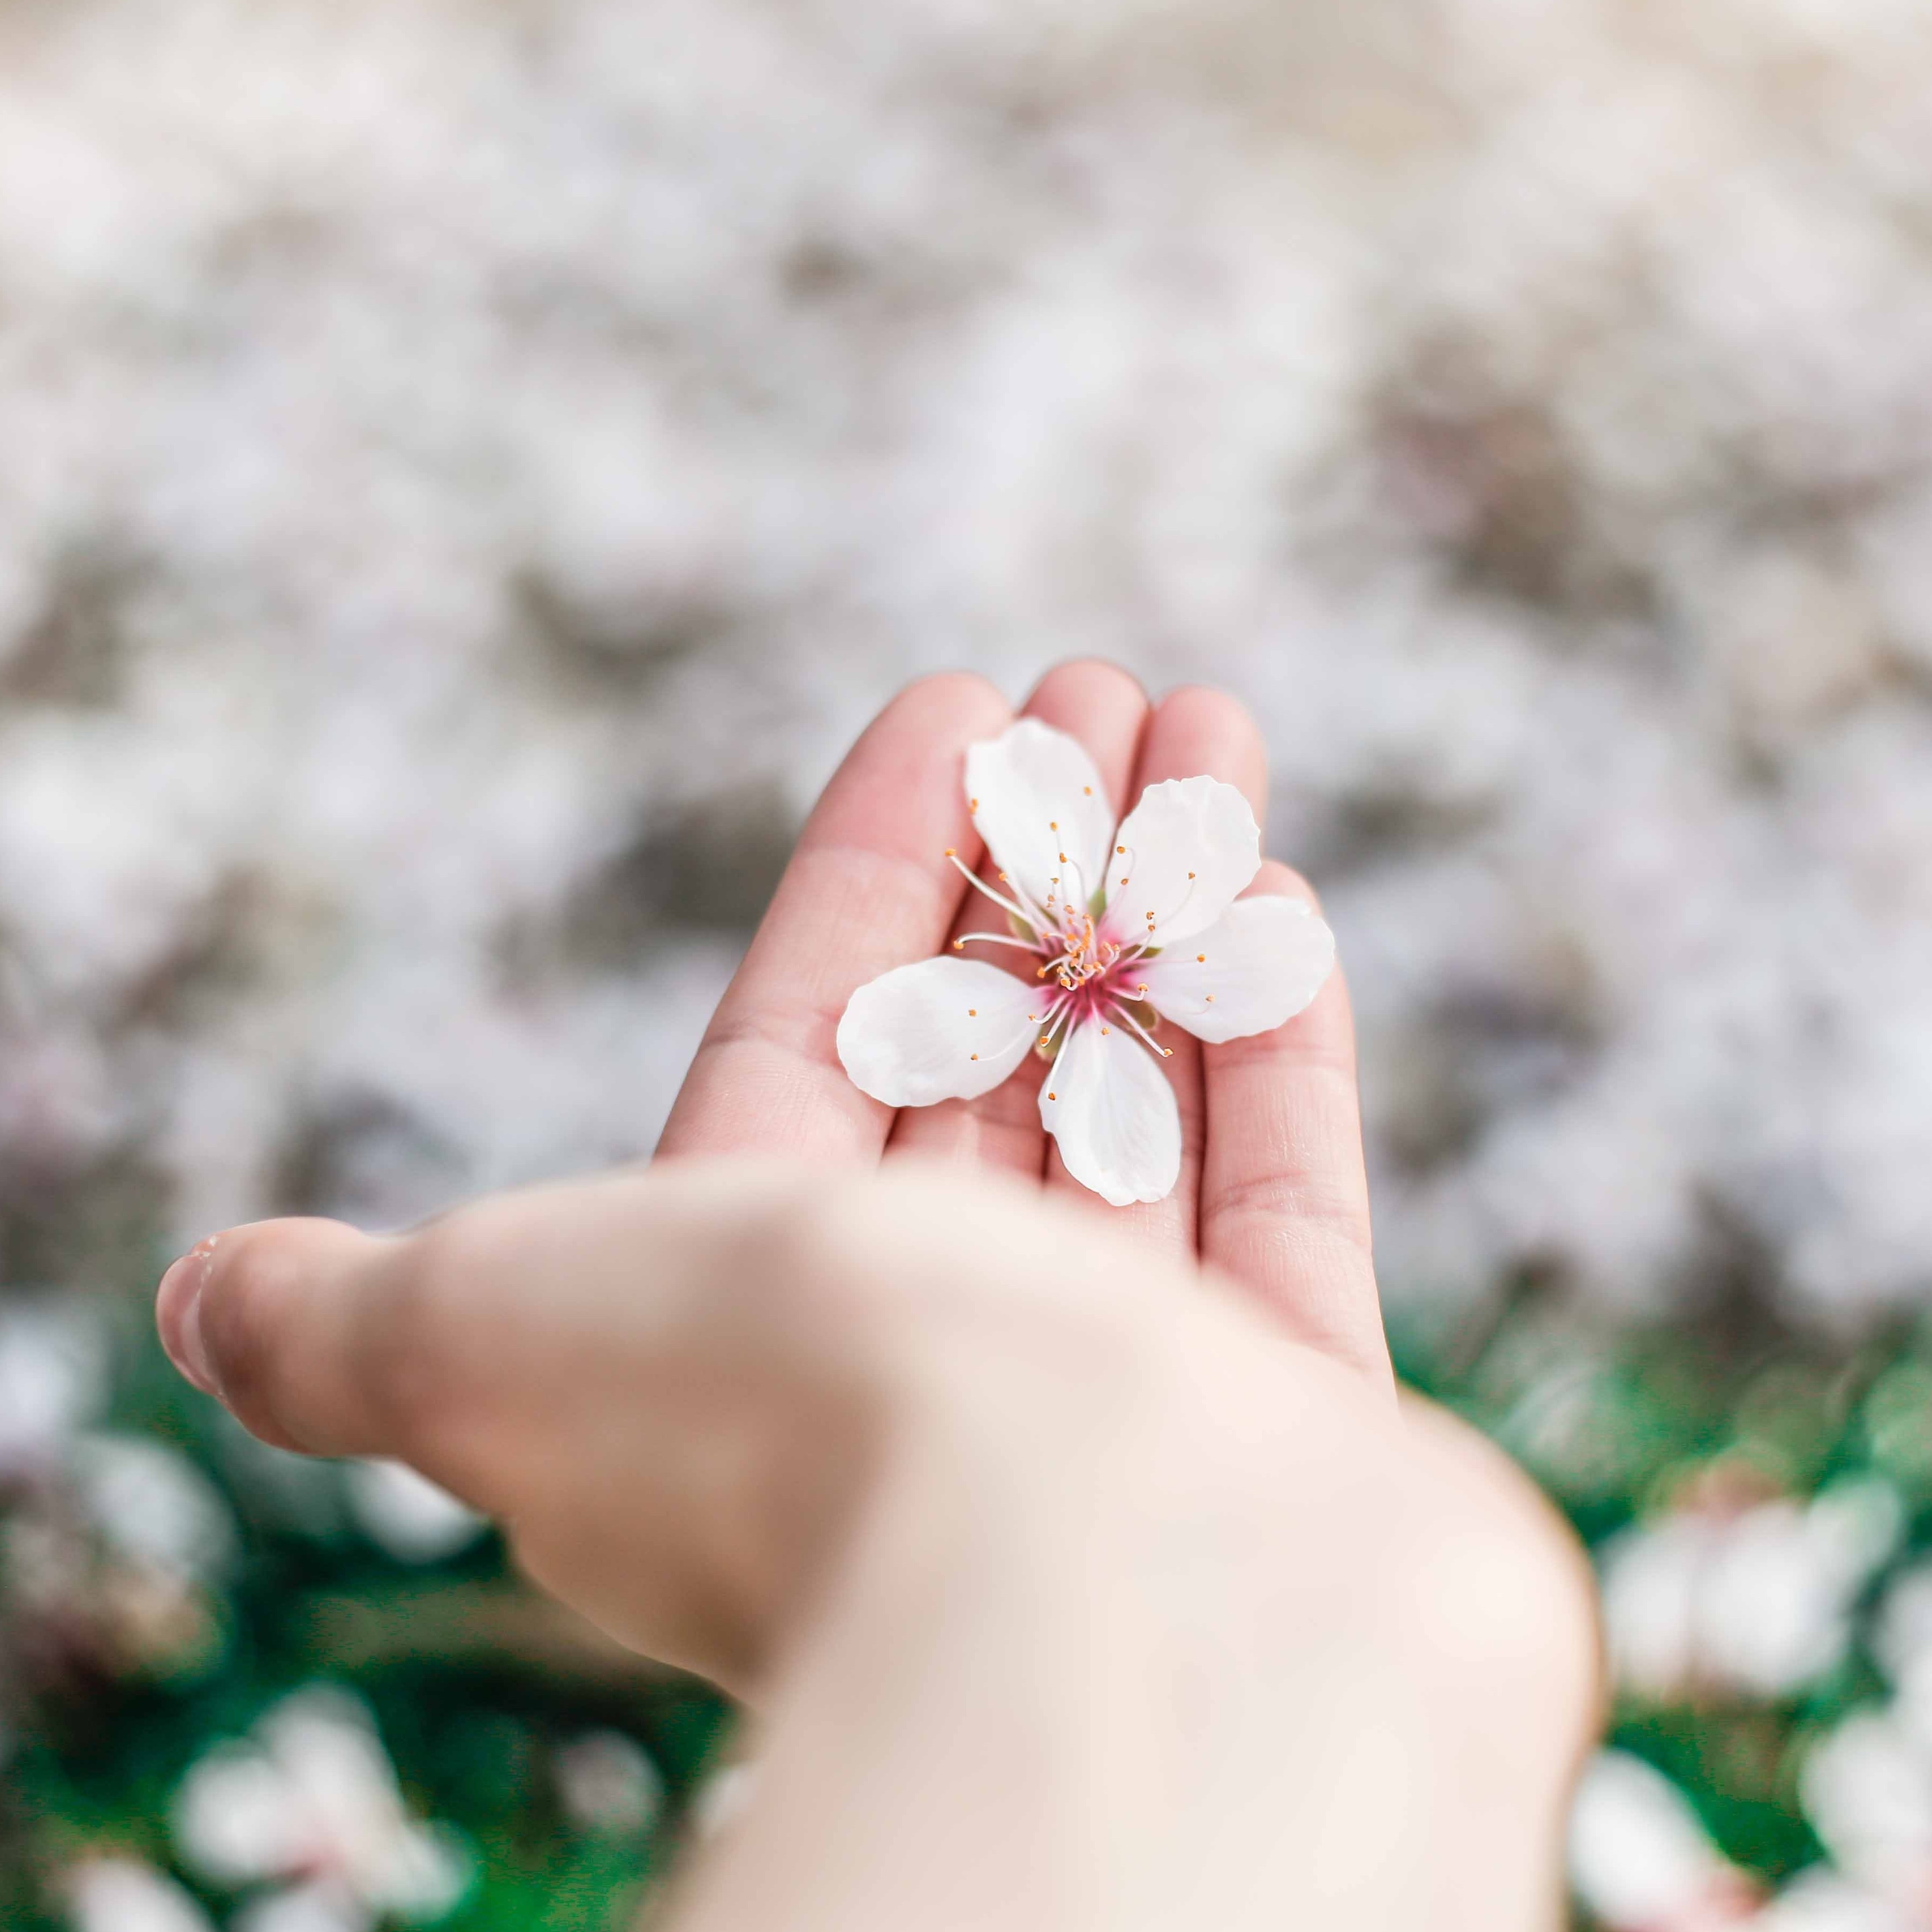 Hand softly holding a flower